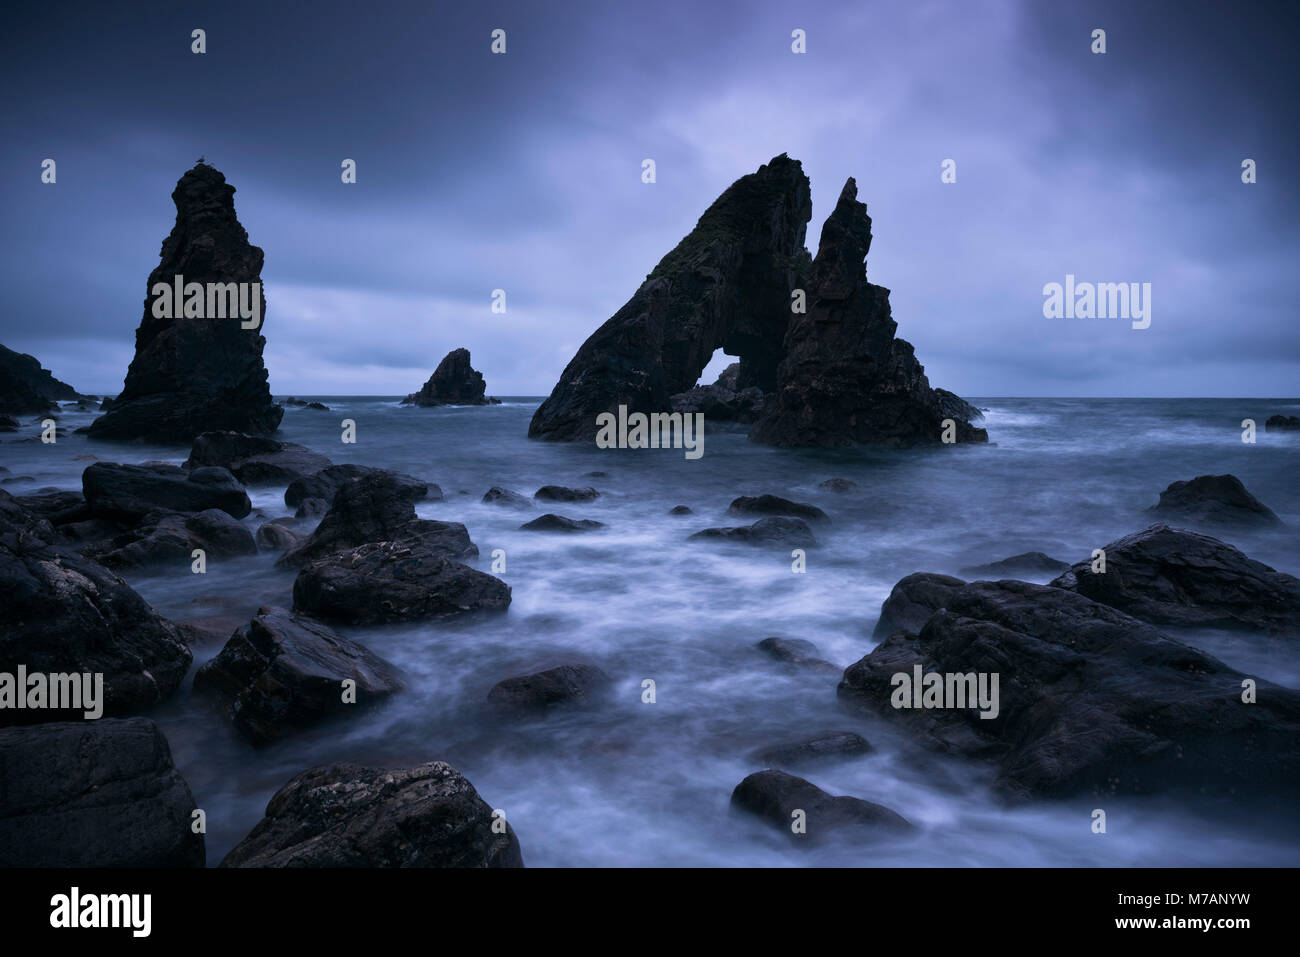 Rock formations 'The Breeches', Crohy Head, County Mayo, Ireland, daybreak, Blue Hour, - Stock Image